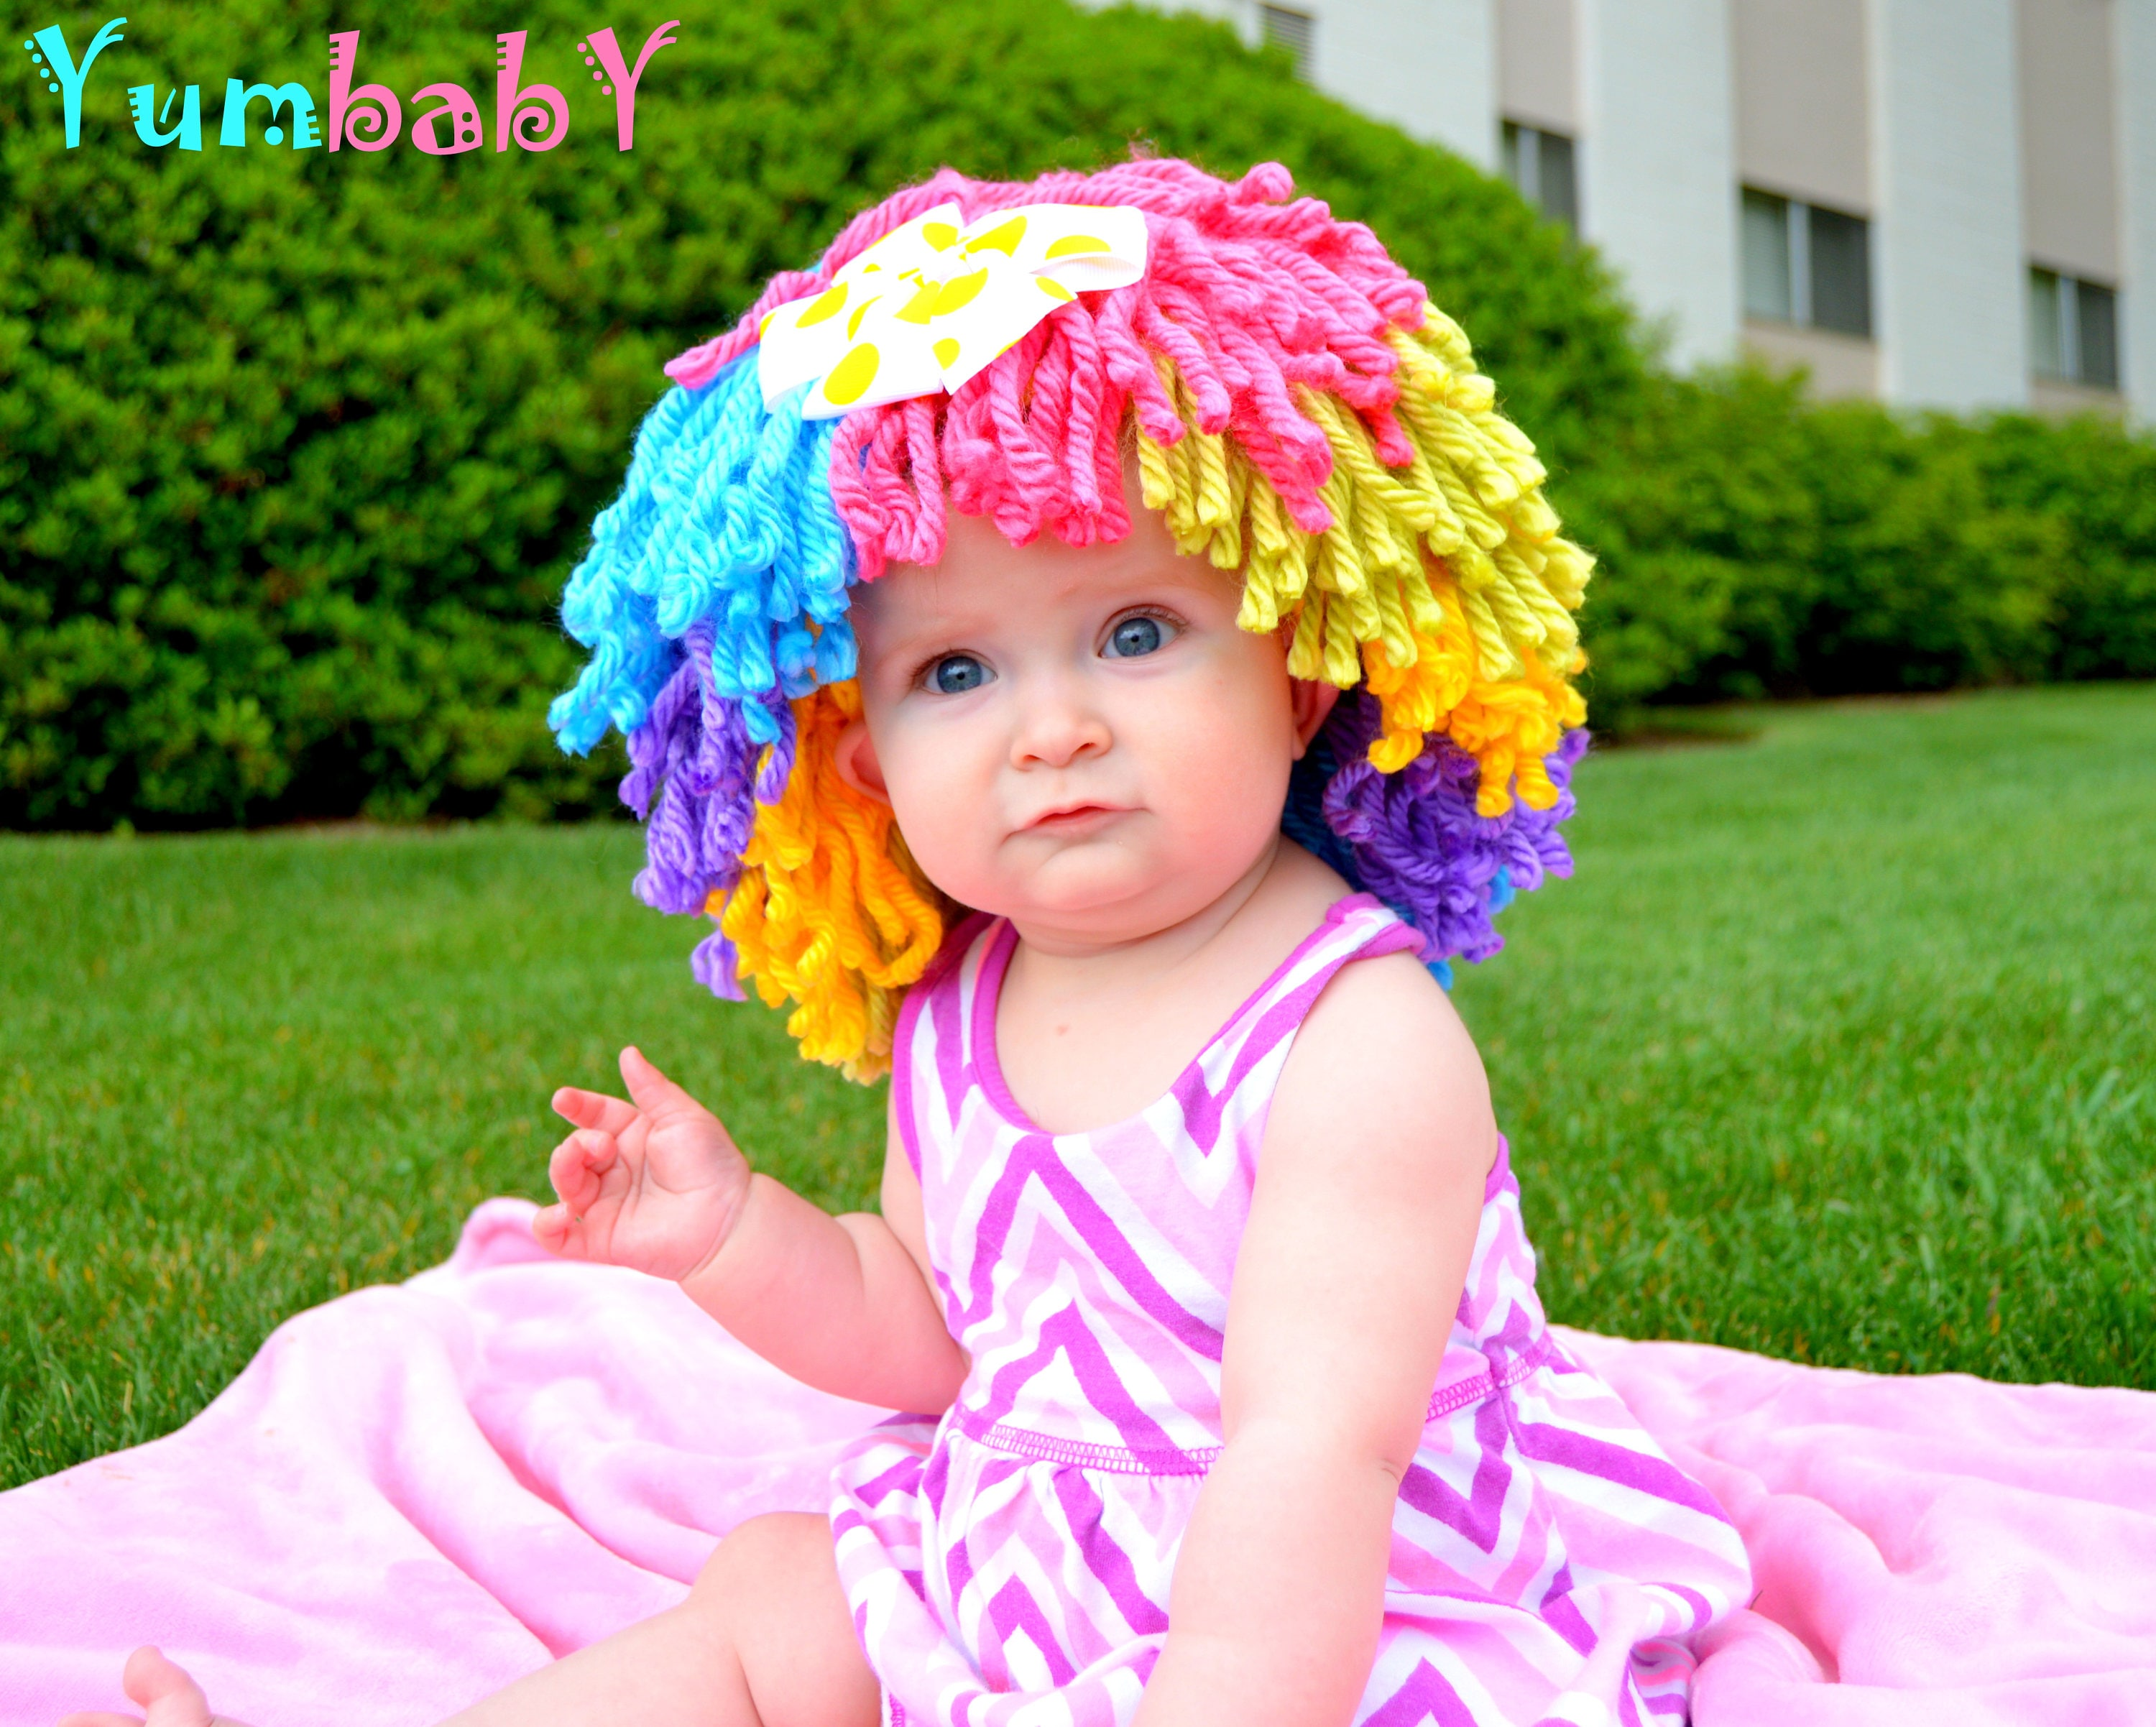 Clown Costume Halloween Costume Clown WIg Dress up clothes  caa18220f